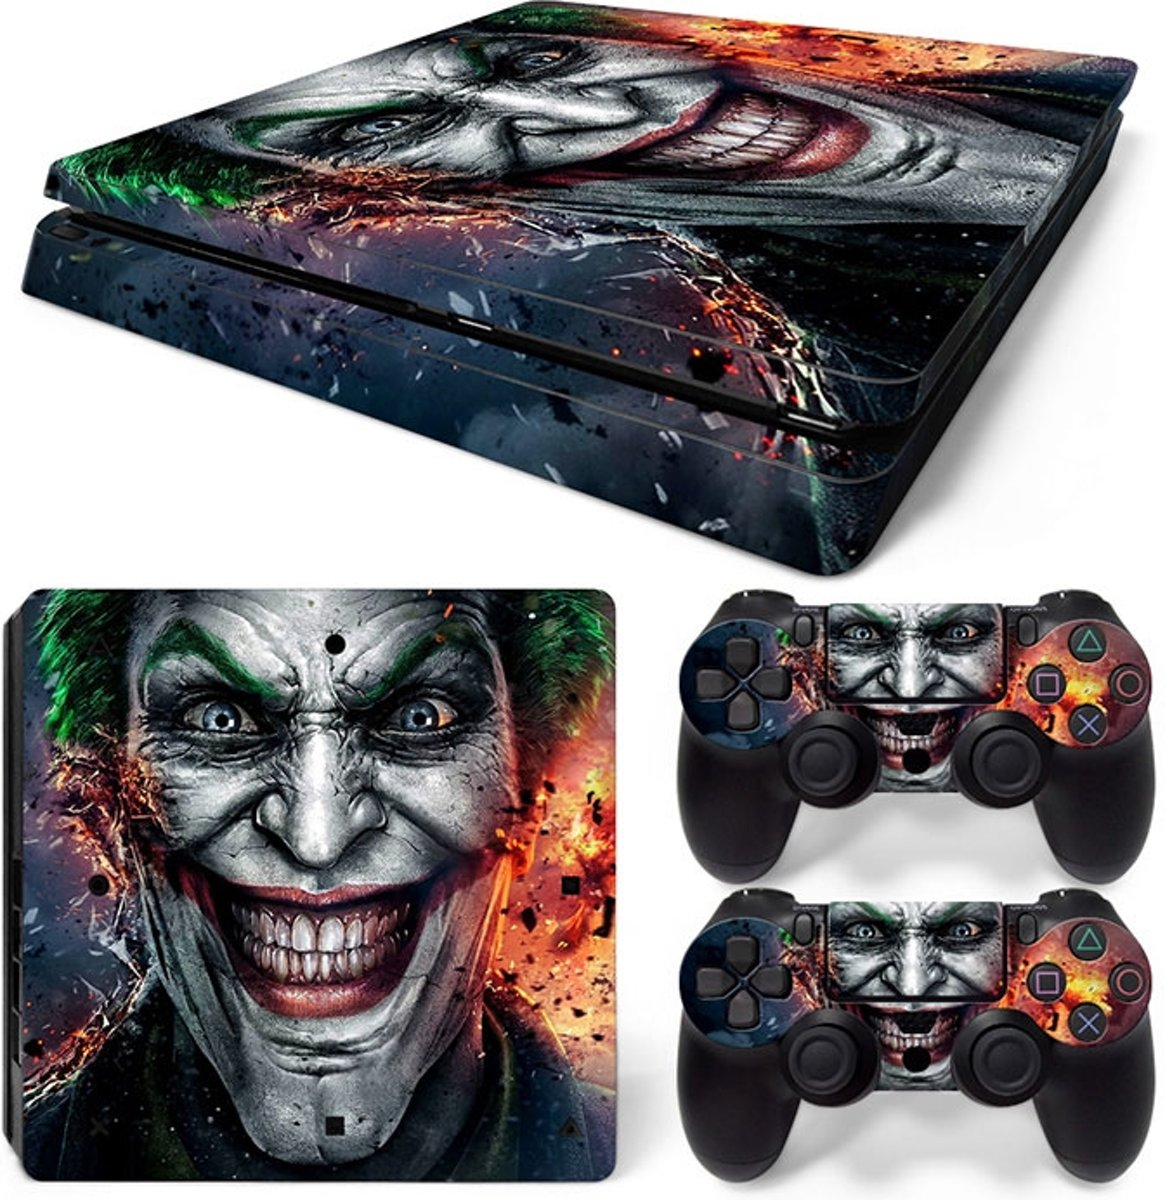 The Joker Crazy - PS4 Slim skin